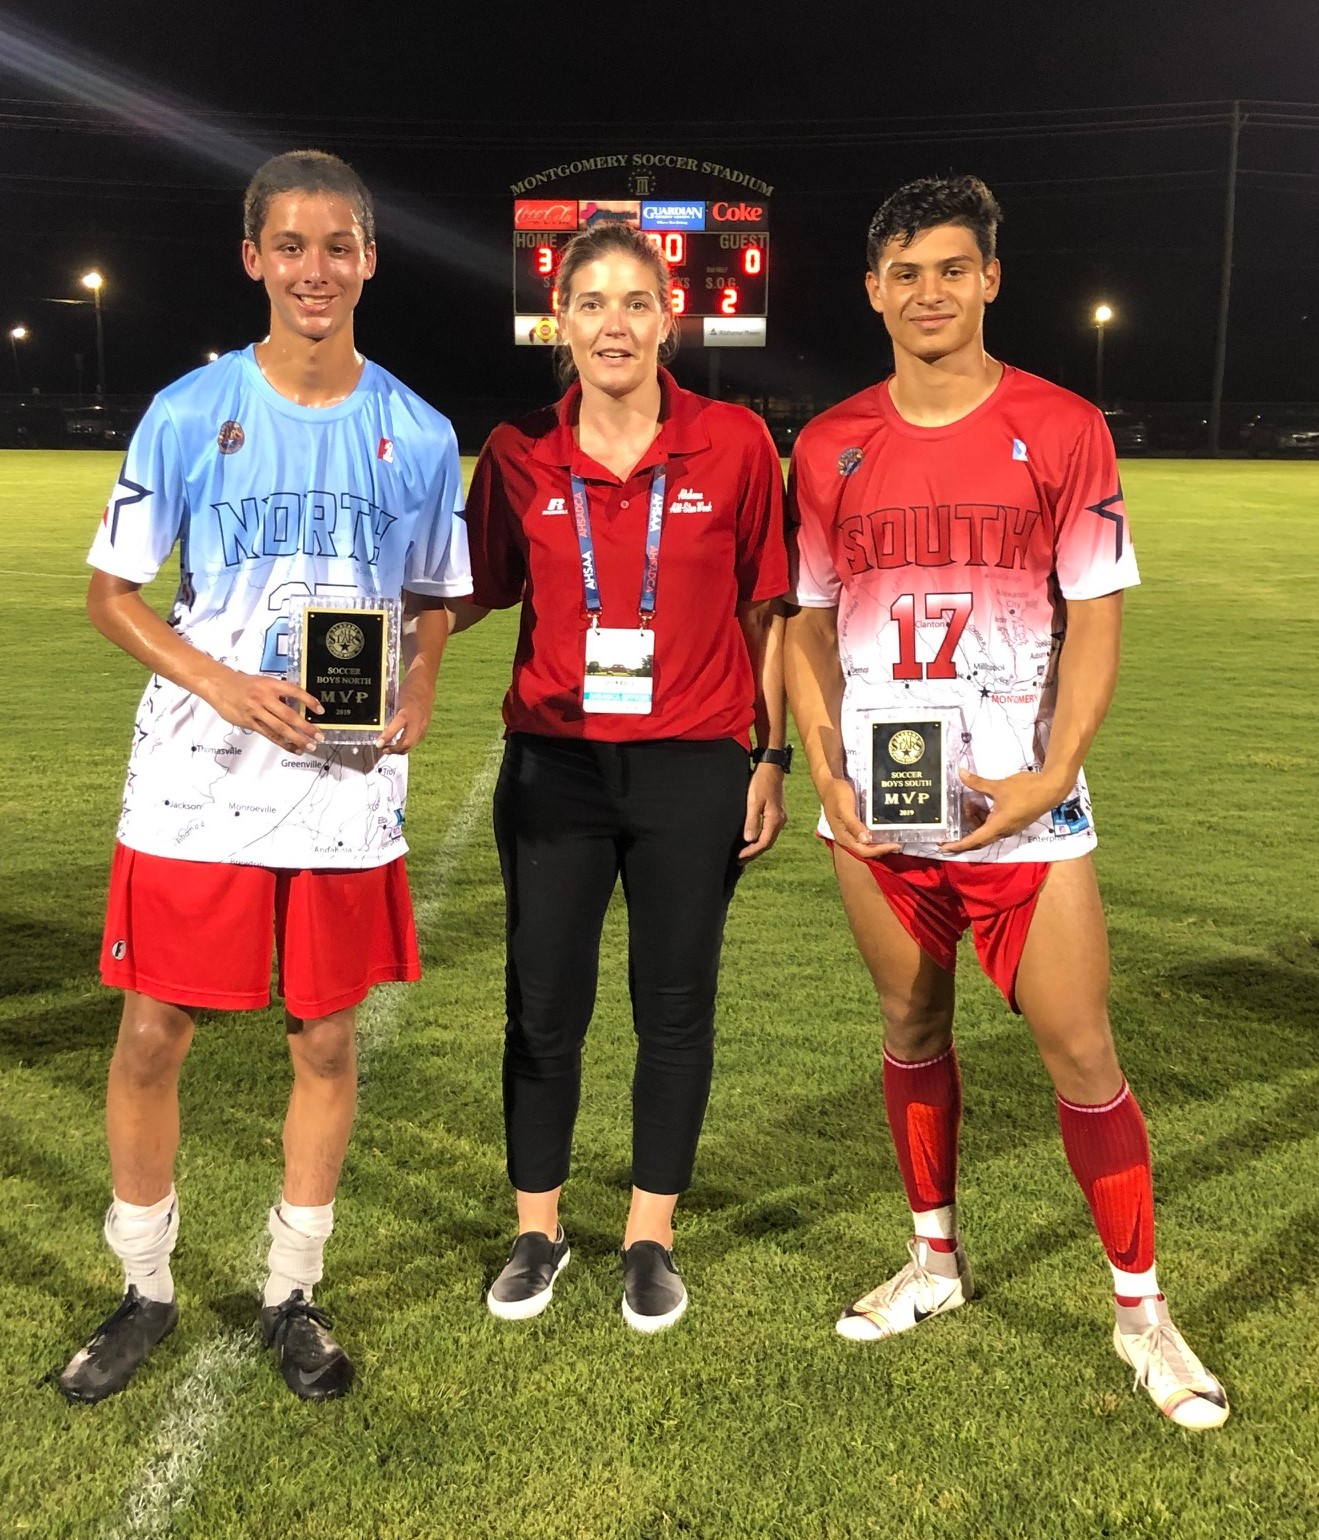 North-South Boys' All-Star Soccer North 3, South 0